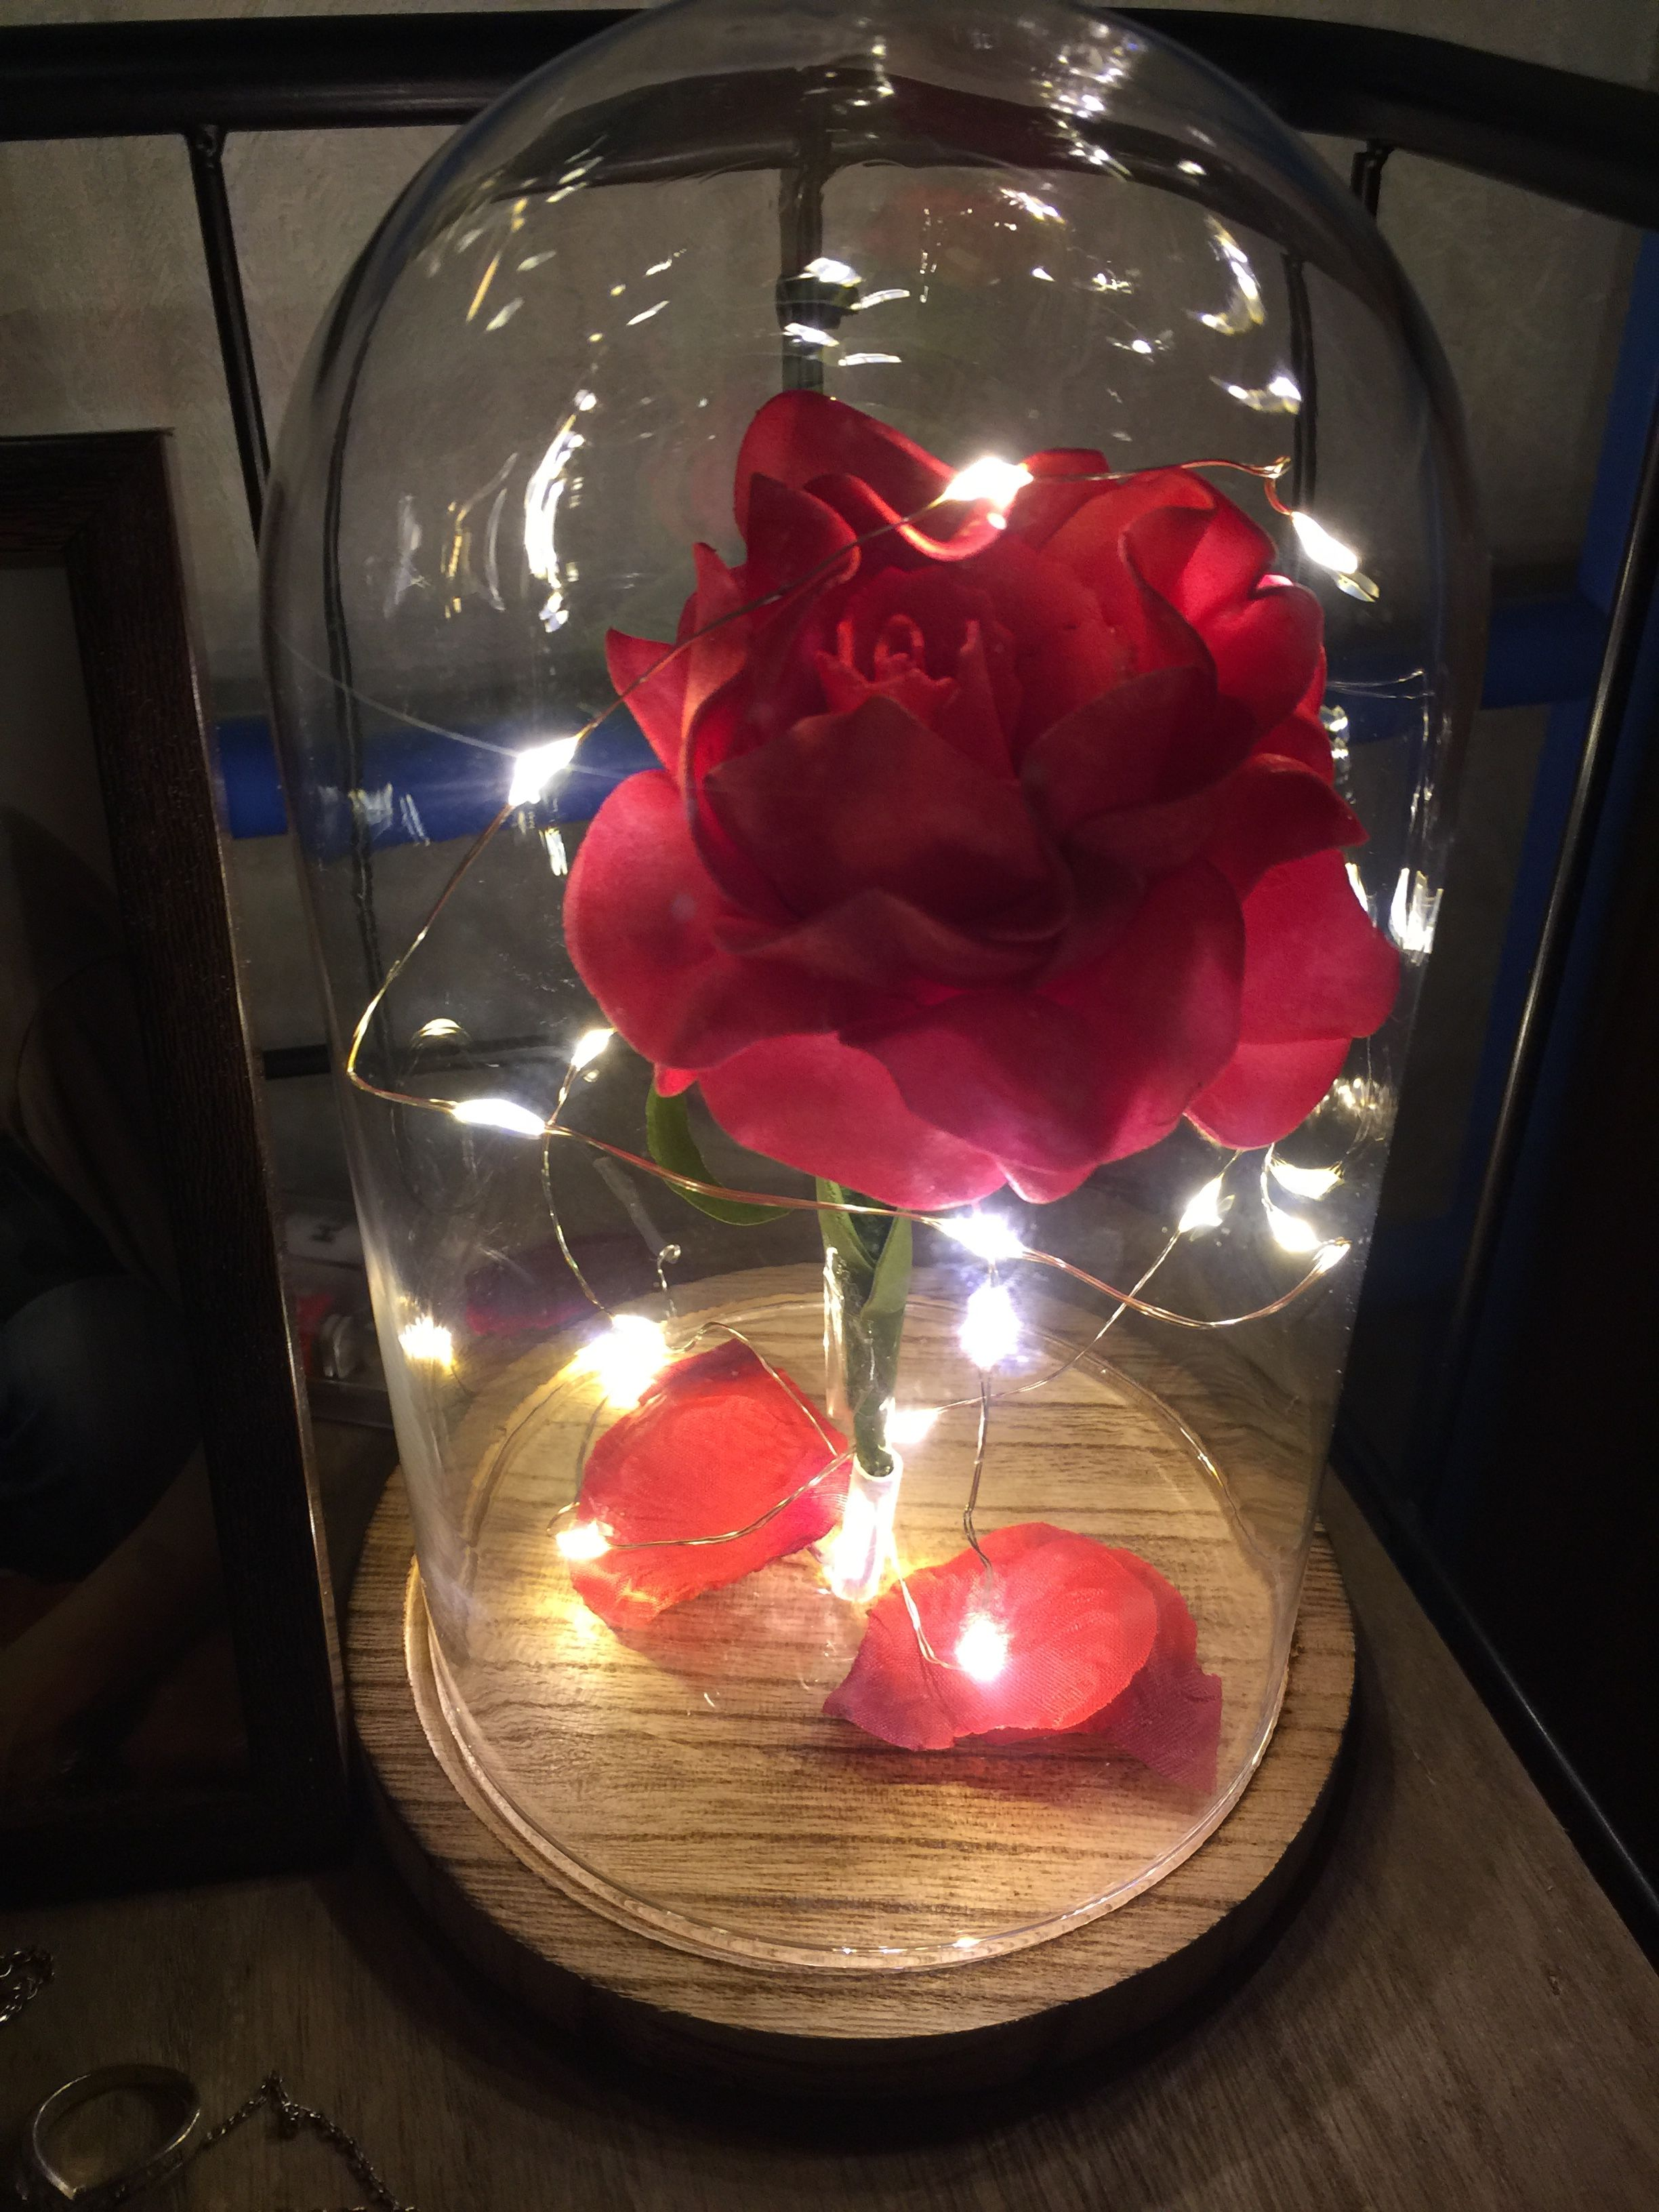 Diy chanted rose from beauty and the beast de roos rozenblaadjes diy chanted rose from beauty and the beast de roos rozenblaadjes de leds izmirmasajfo